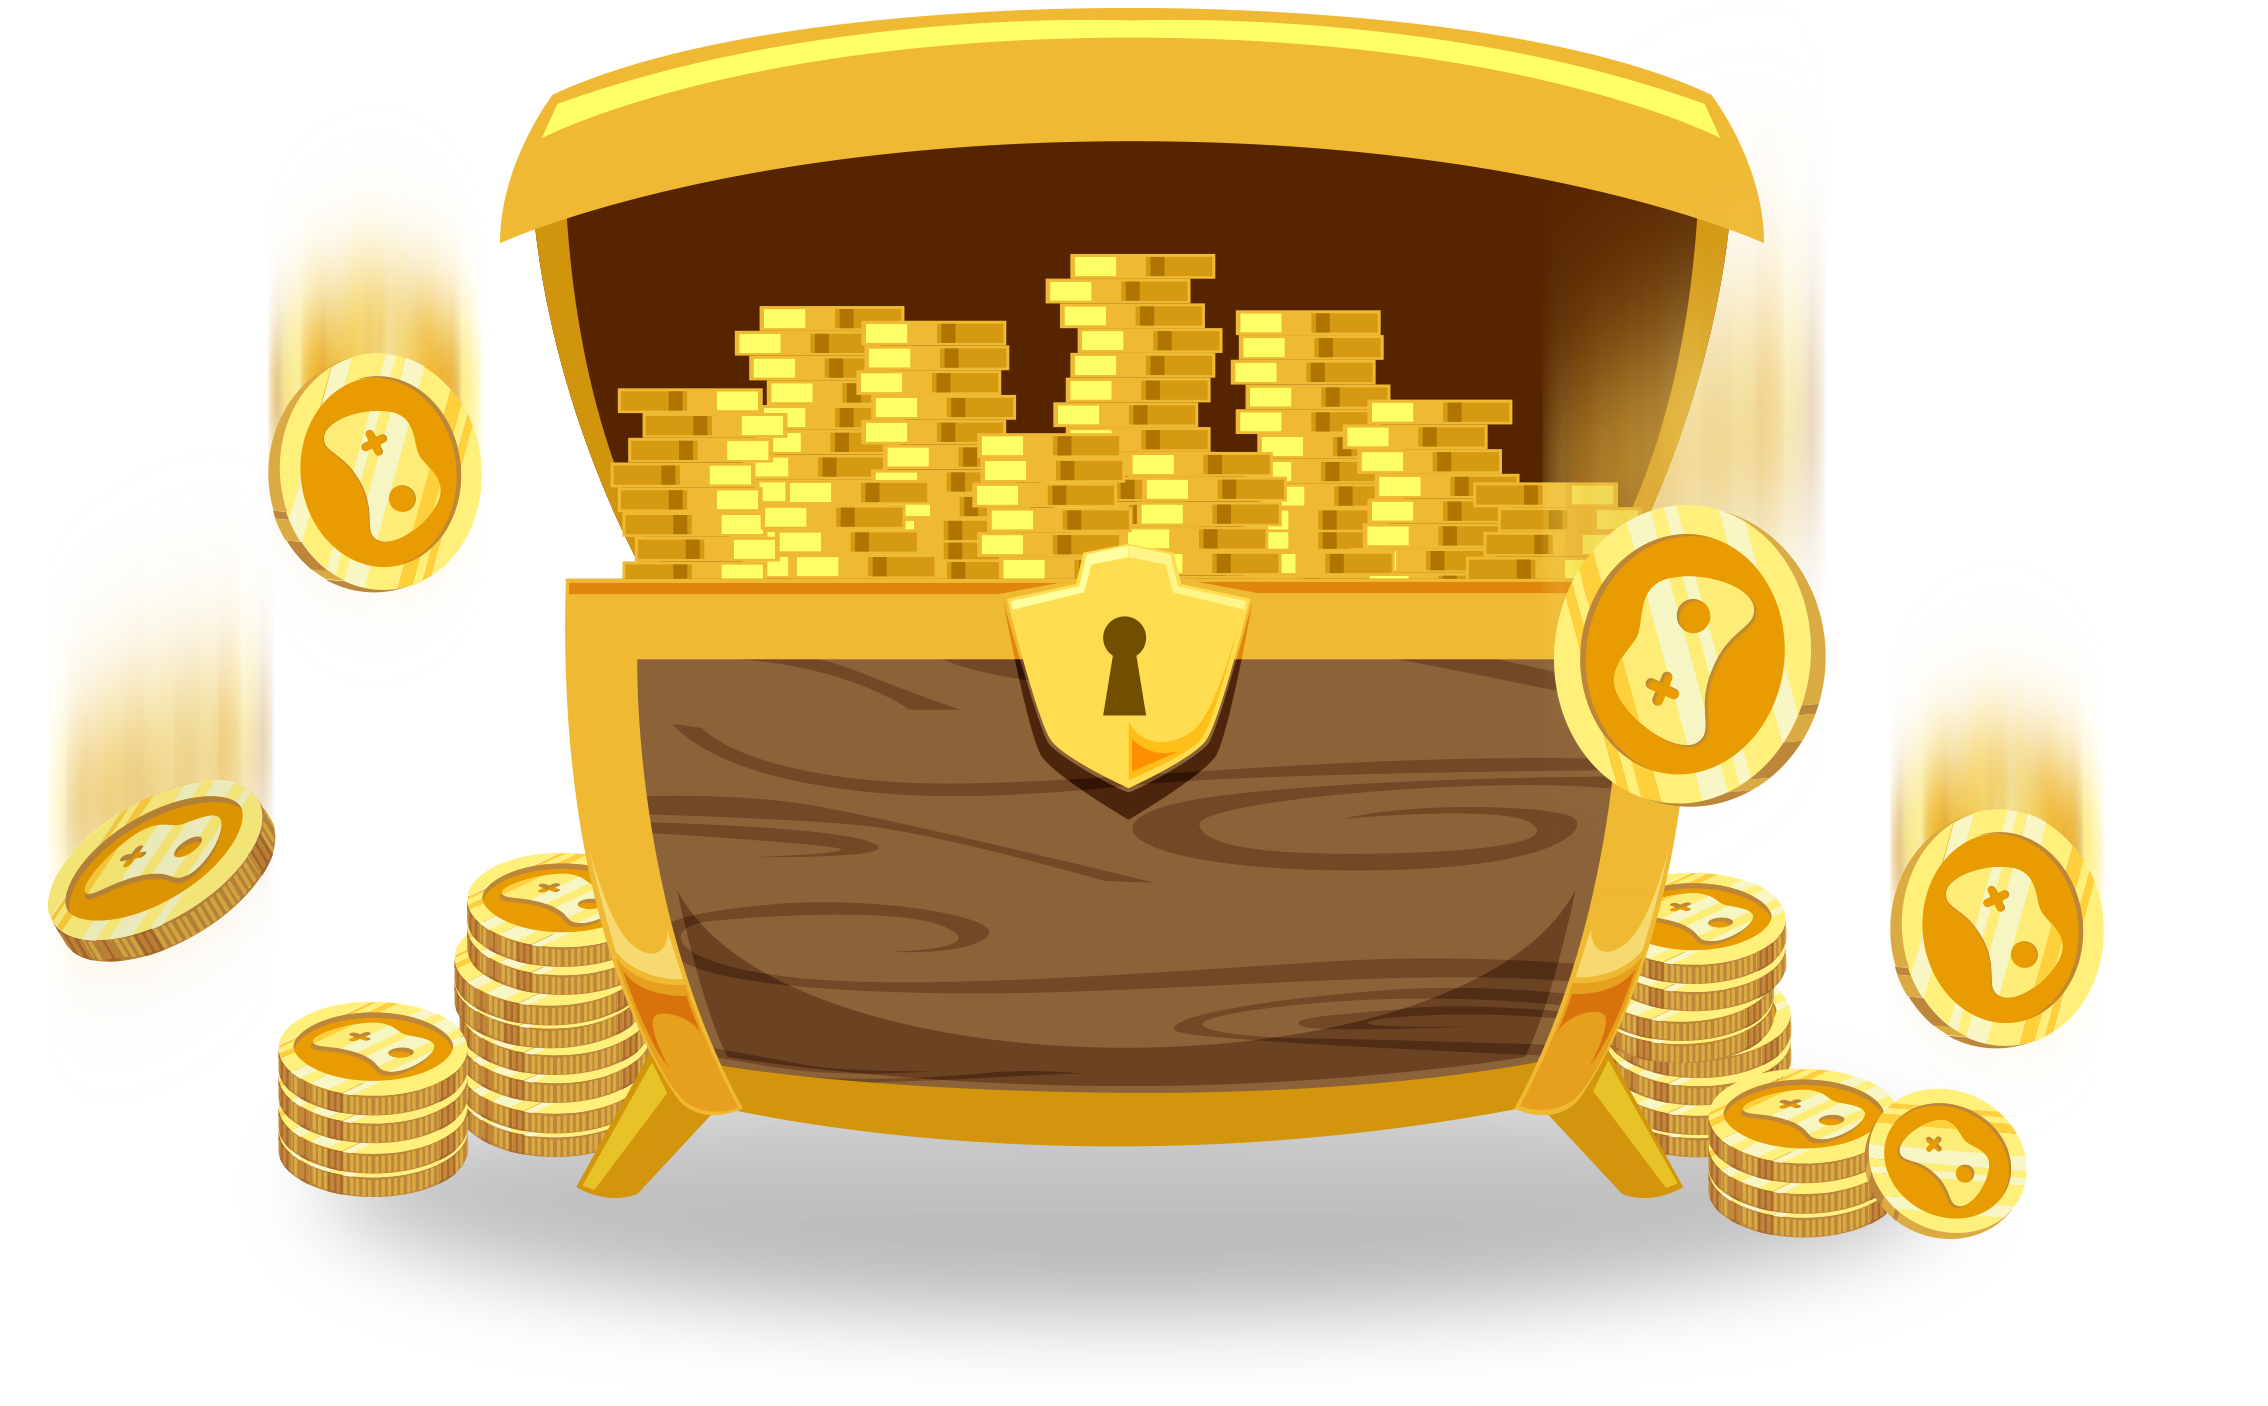 treasure chest@2x.png